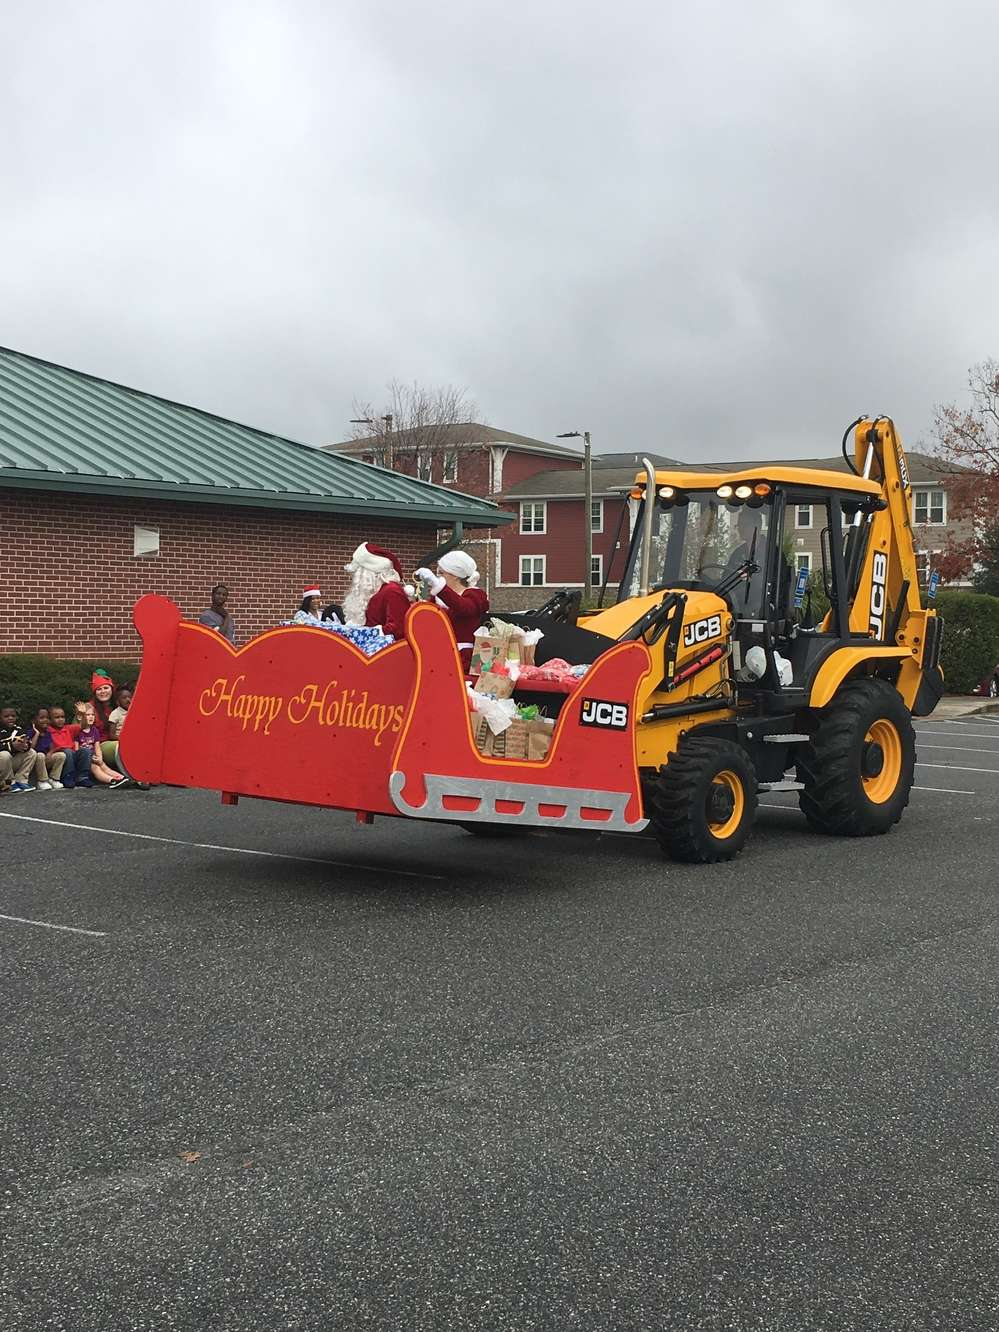 Sleigh with 3CX backhoe.